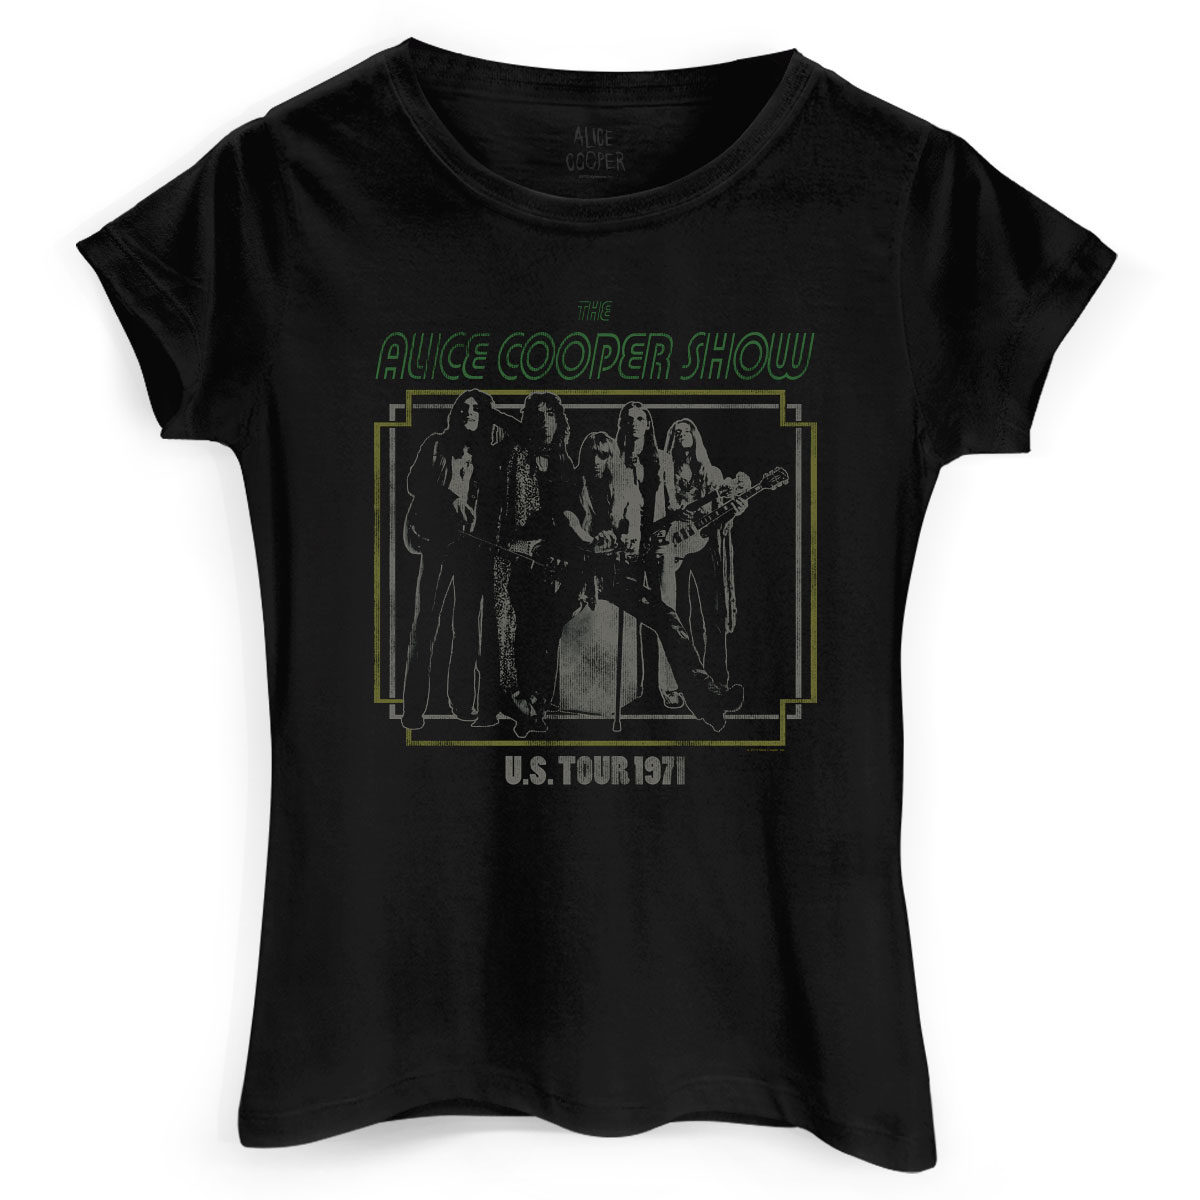 Camiseta Feminina Alice Cooper US Tour 1971